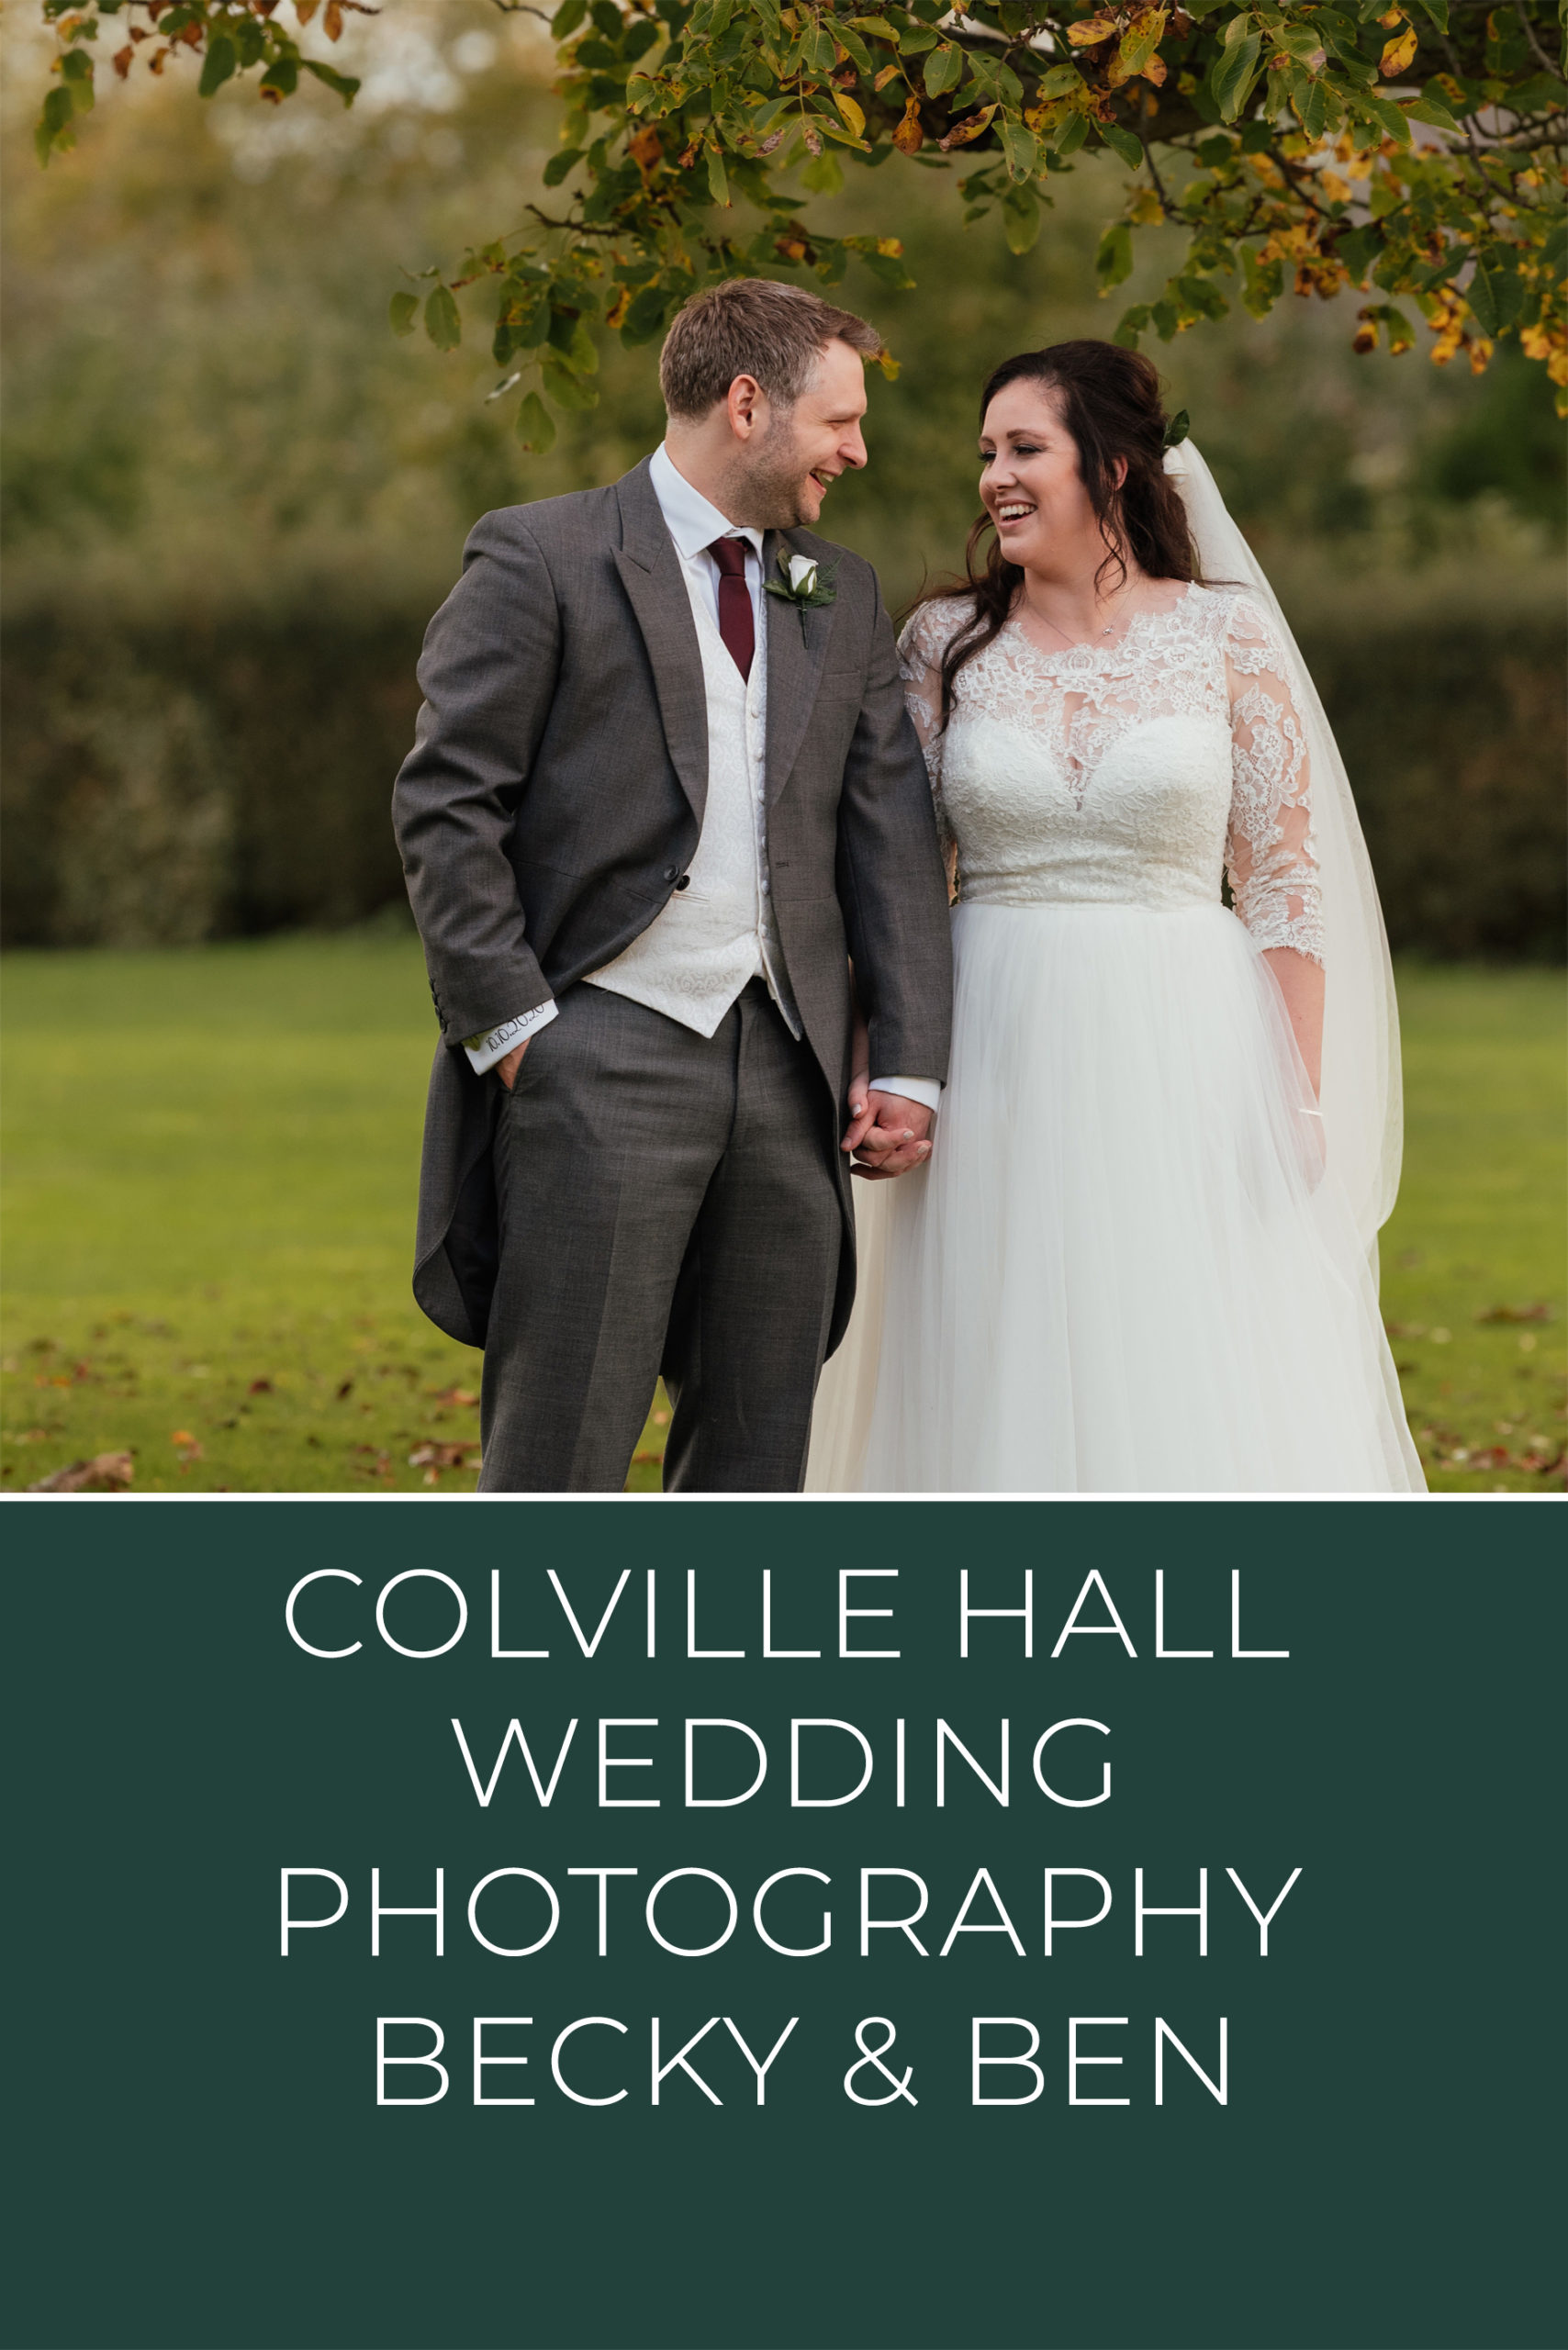 Colville Hall Wedding Photography Pinterest Graphic with image of couple in autumn